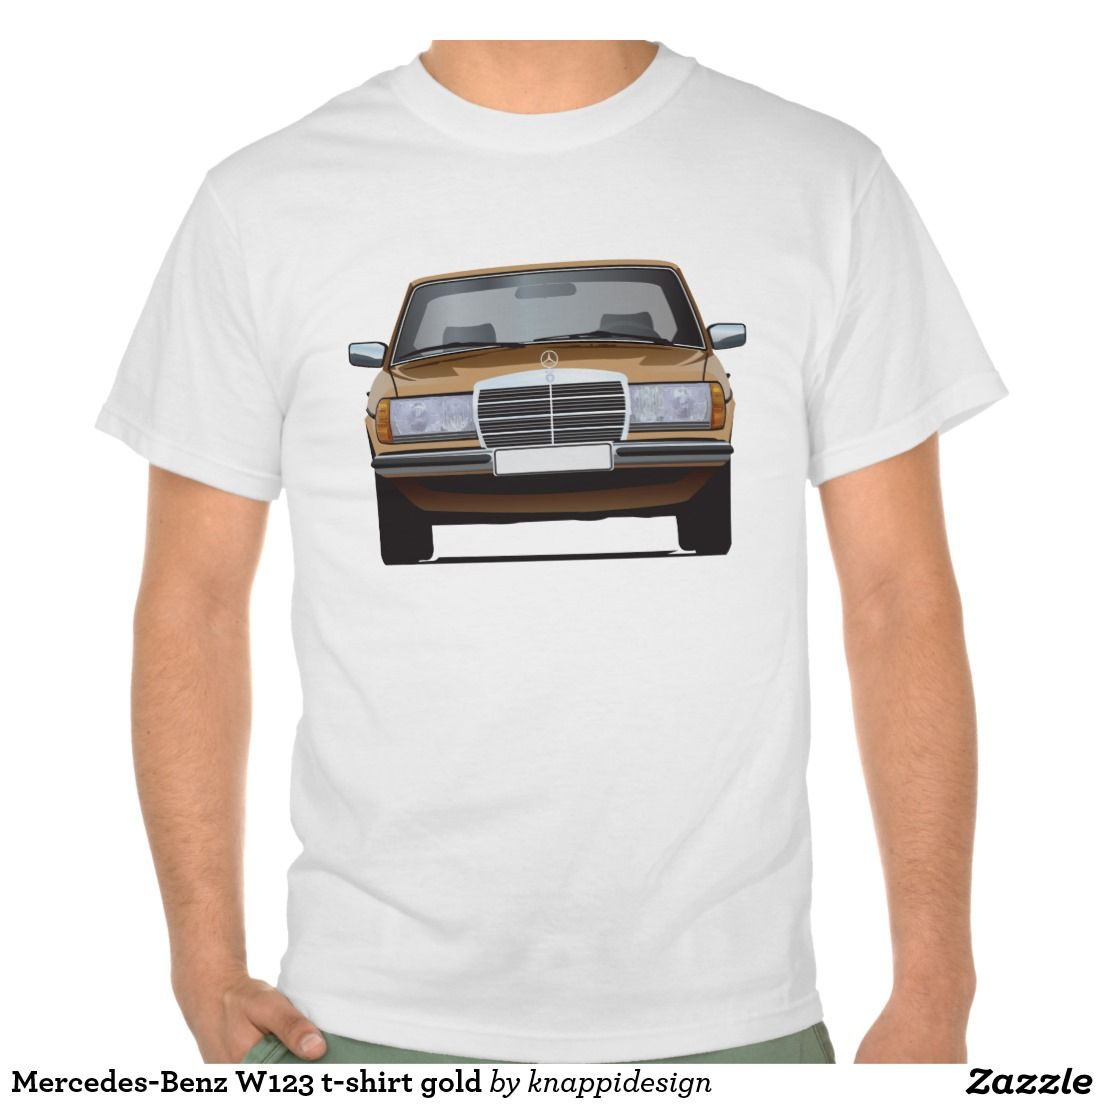 Zazzle t shirt design size - Mercedes Benz T Shirt Brown Created By Knappidesign This Design Is Available On Many Sizes Styles And Colors Of Shirts